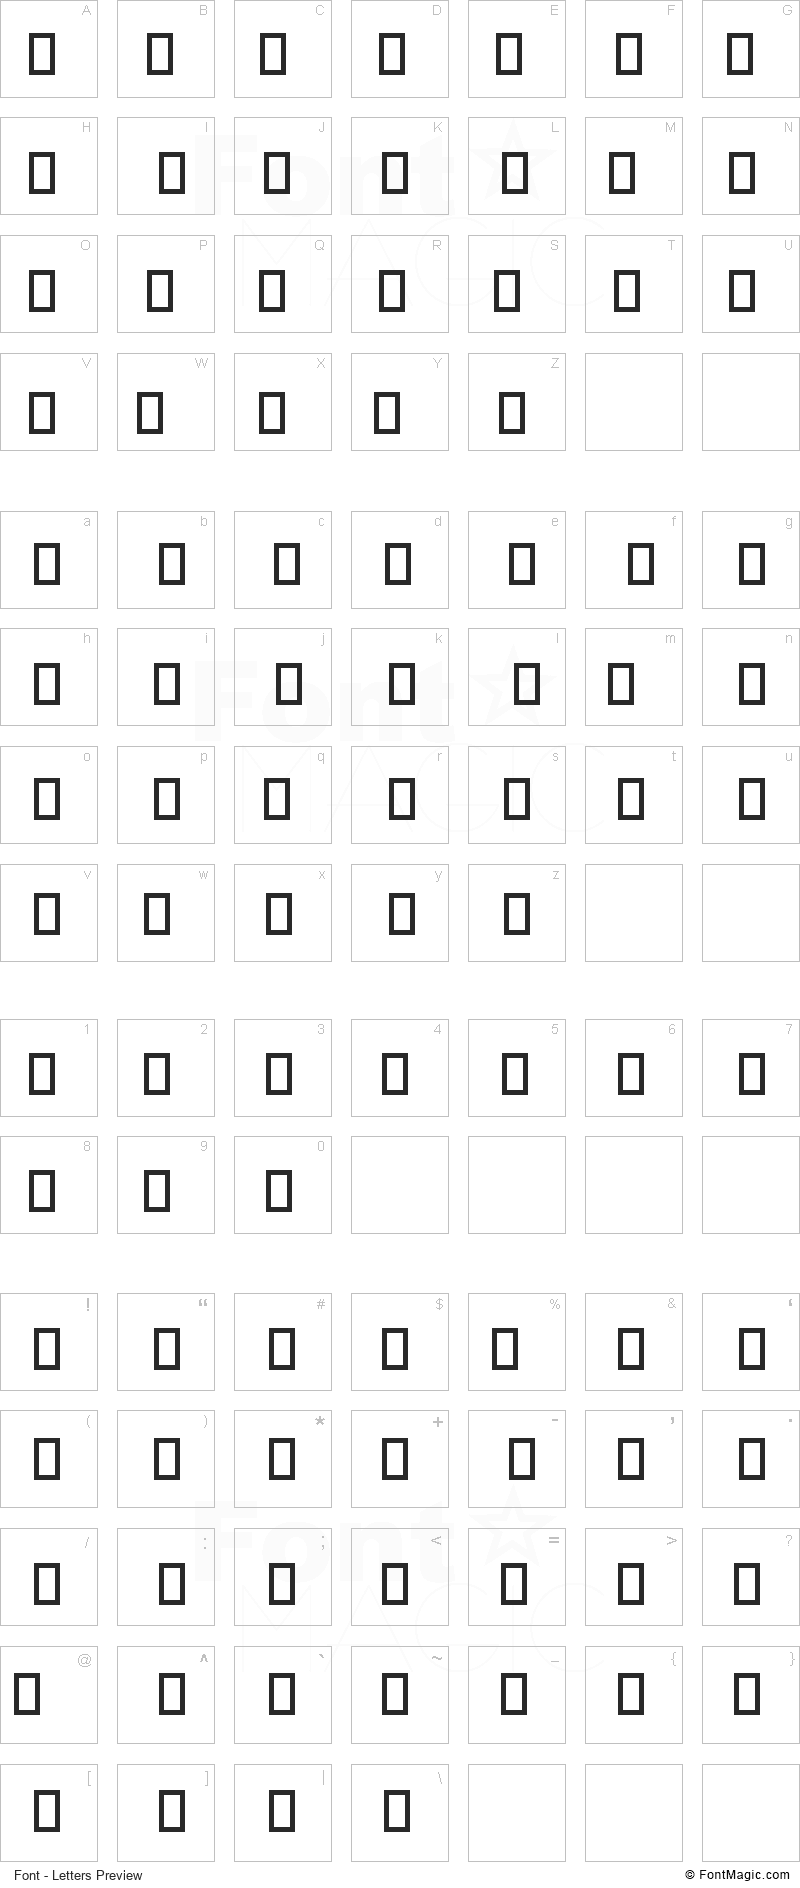 Clothes Font - All Latters Preview Chart